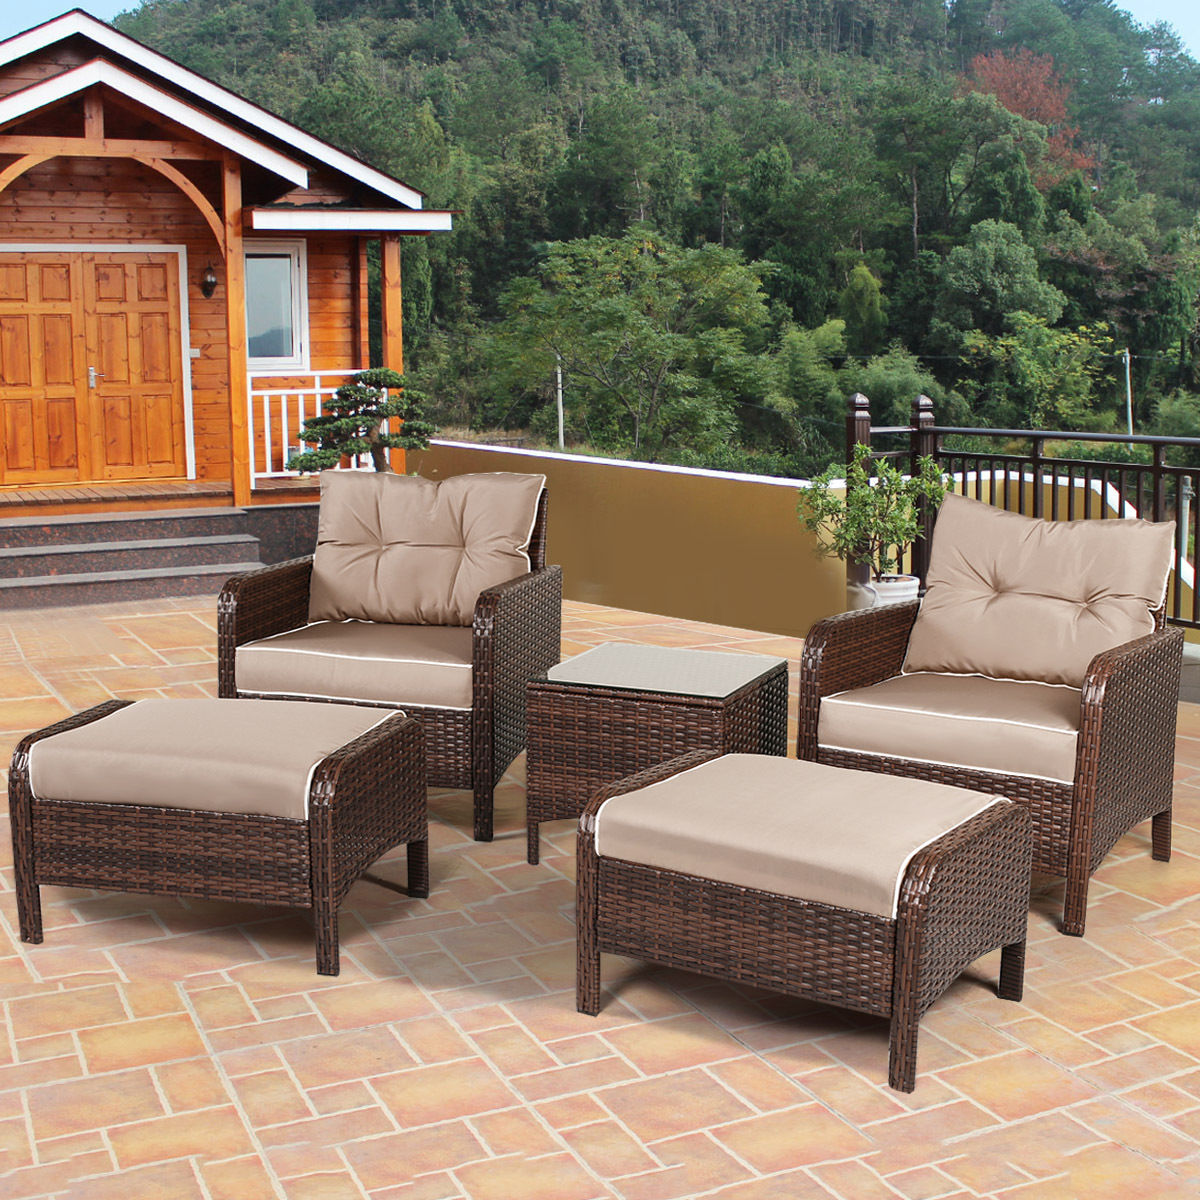 Costway 5 PCS Rattan Wicker Furniture Set Sofa Ottoman W/Brown Cushion  Patio Garden Yard